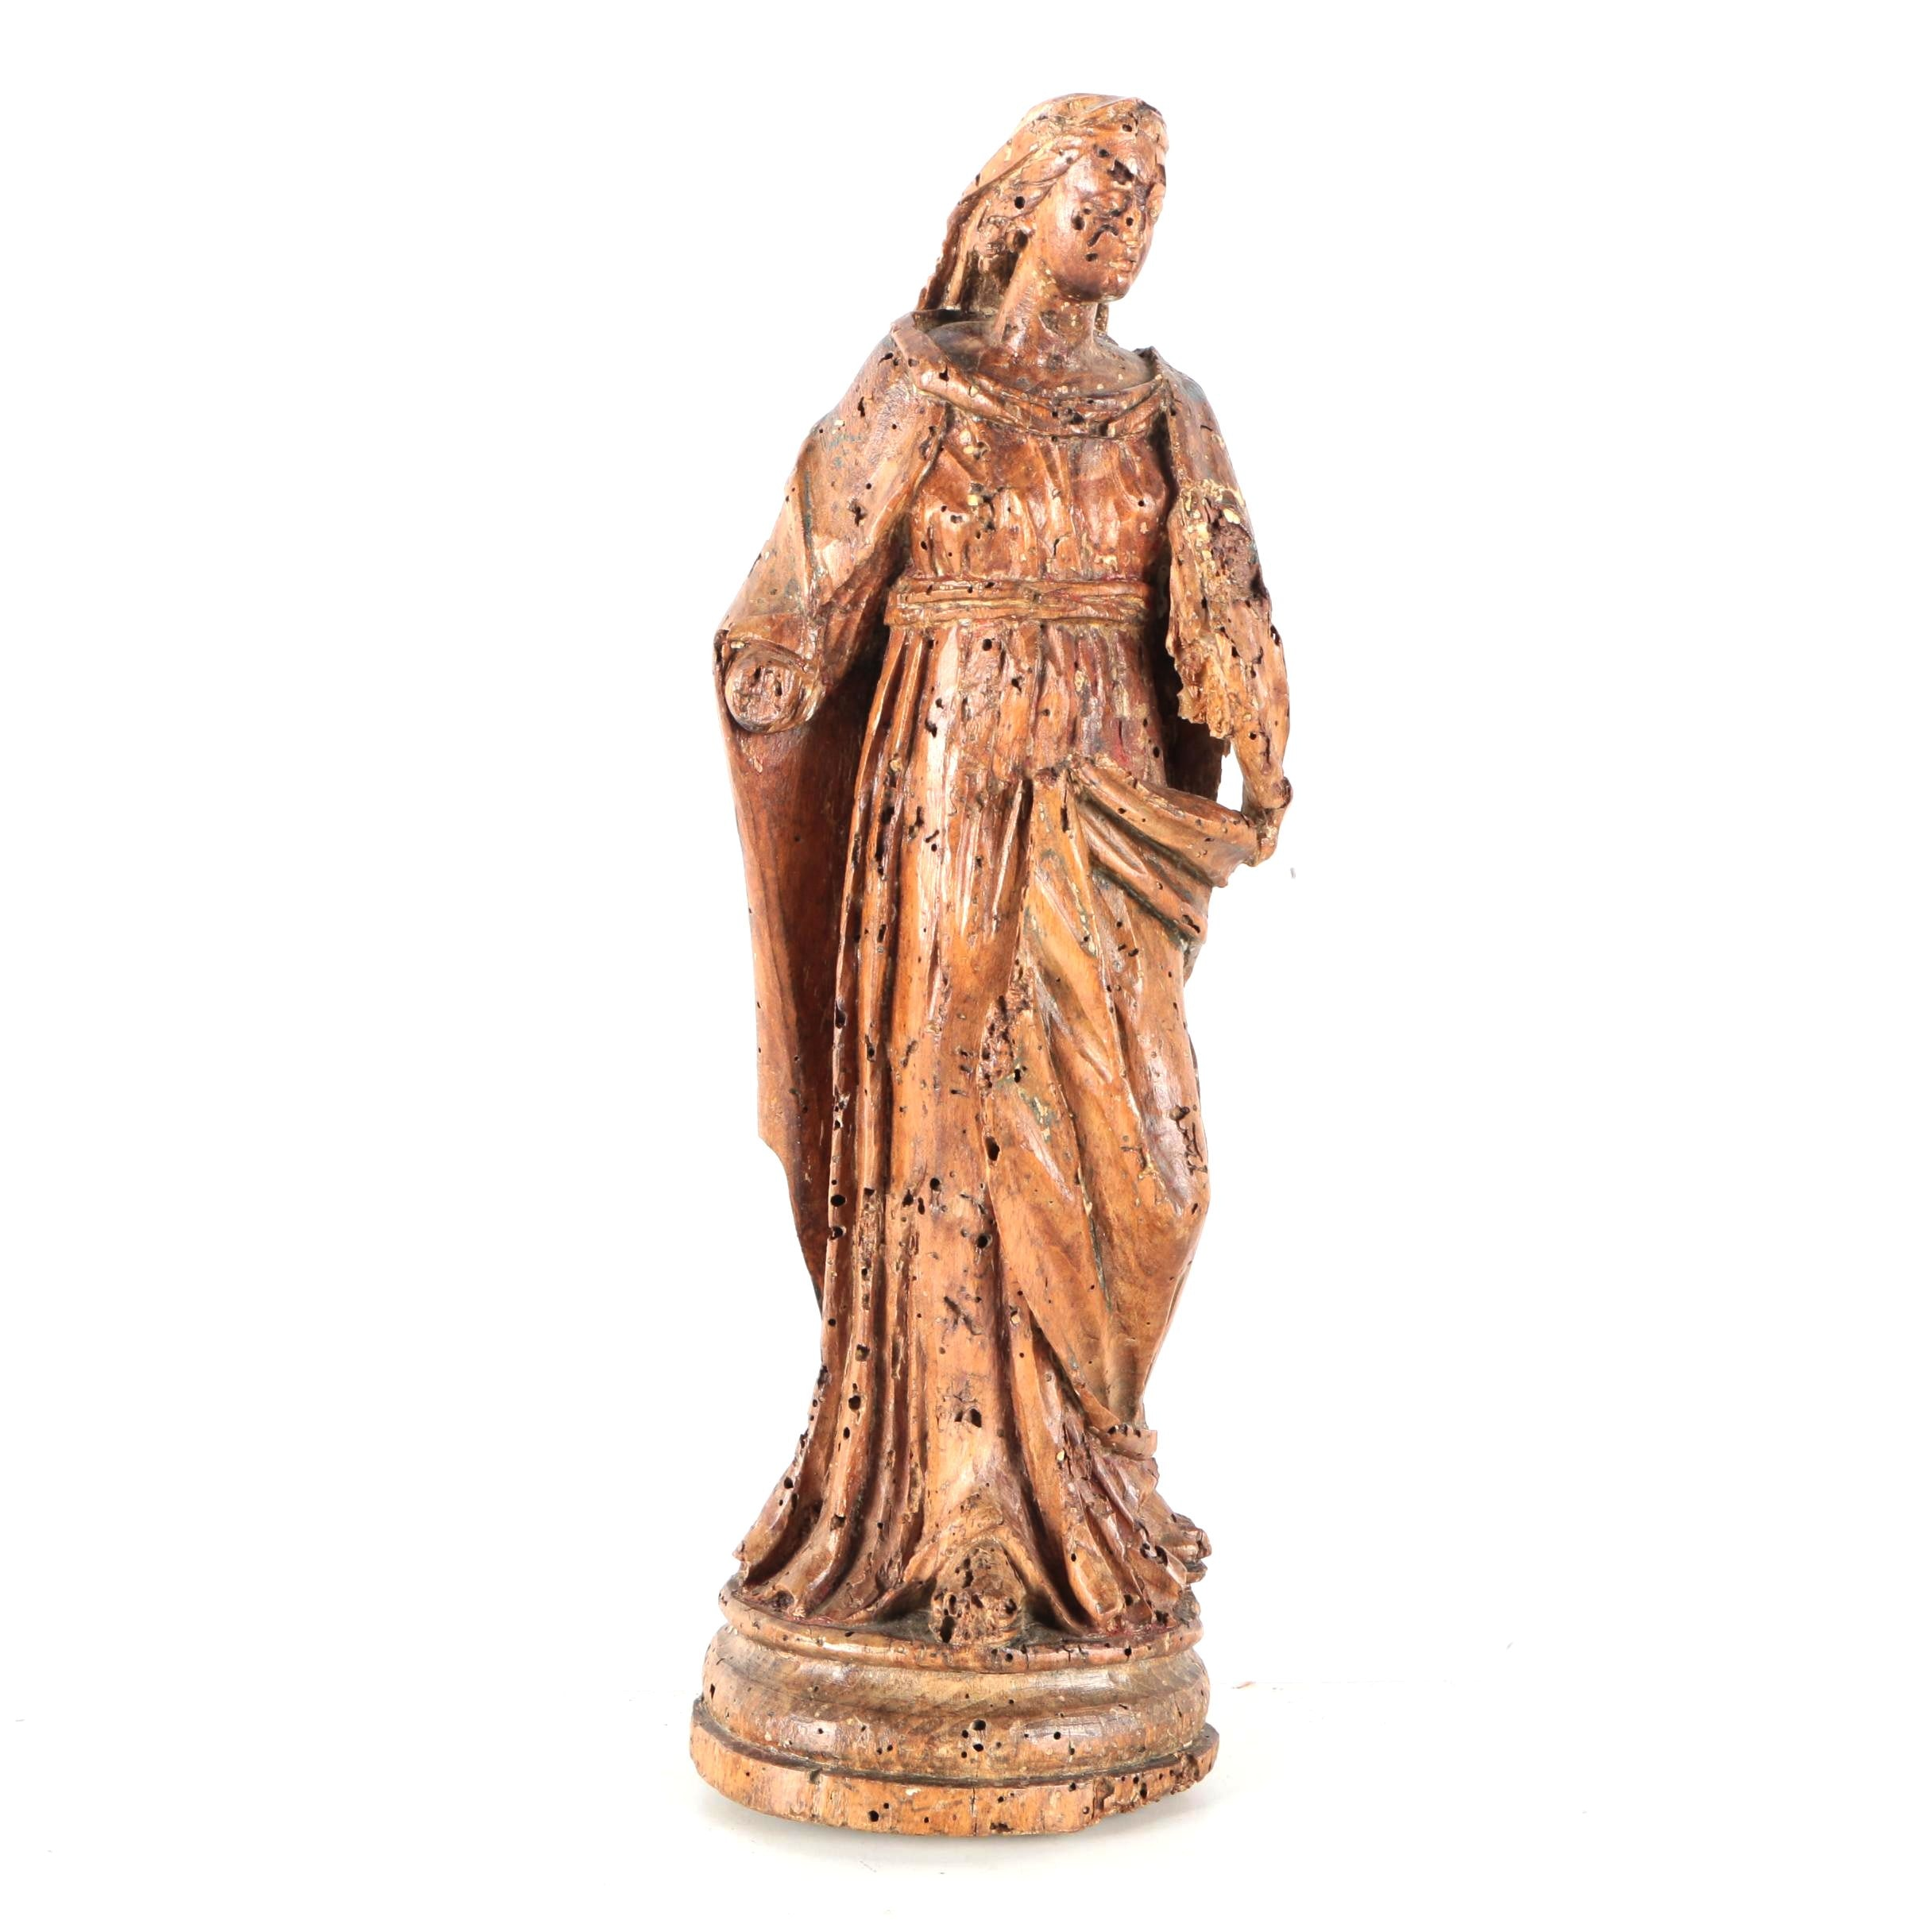 Carved Wooden Figurine of Mary